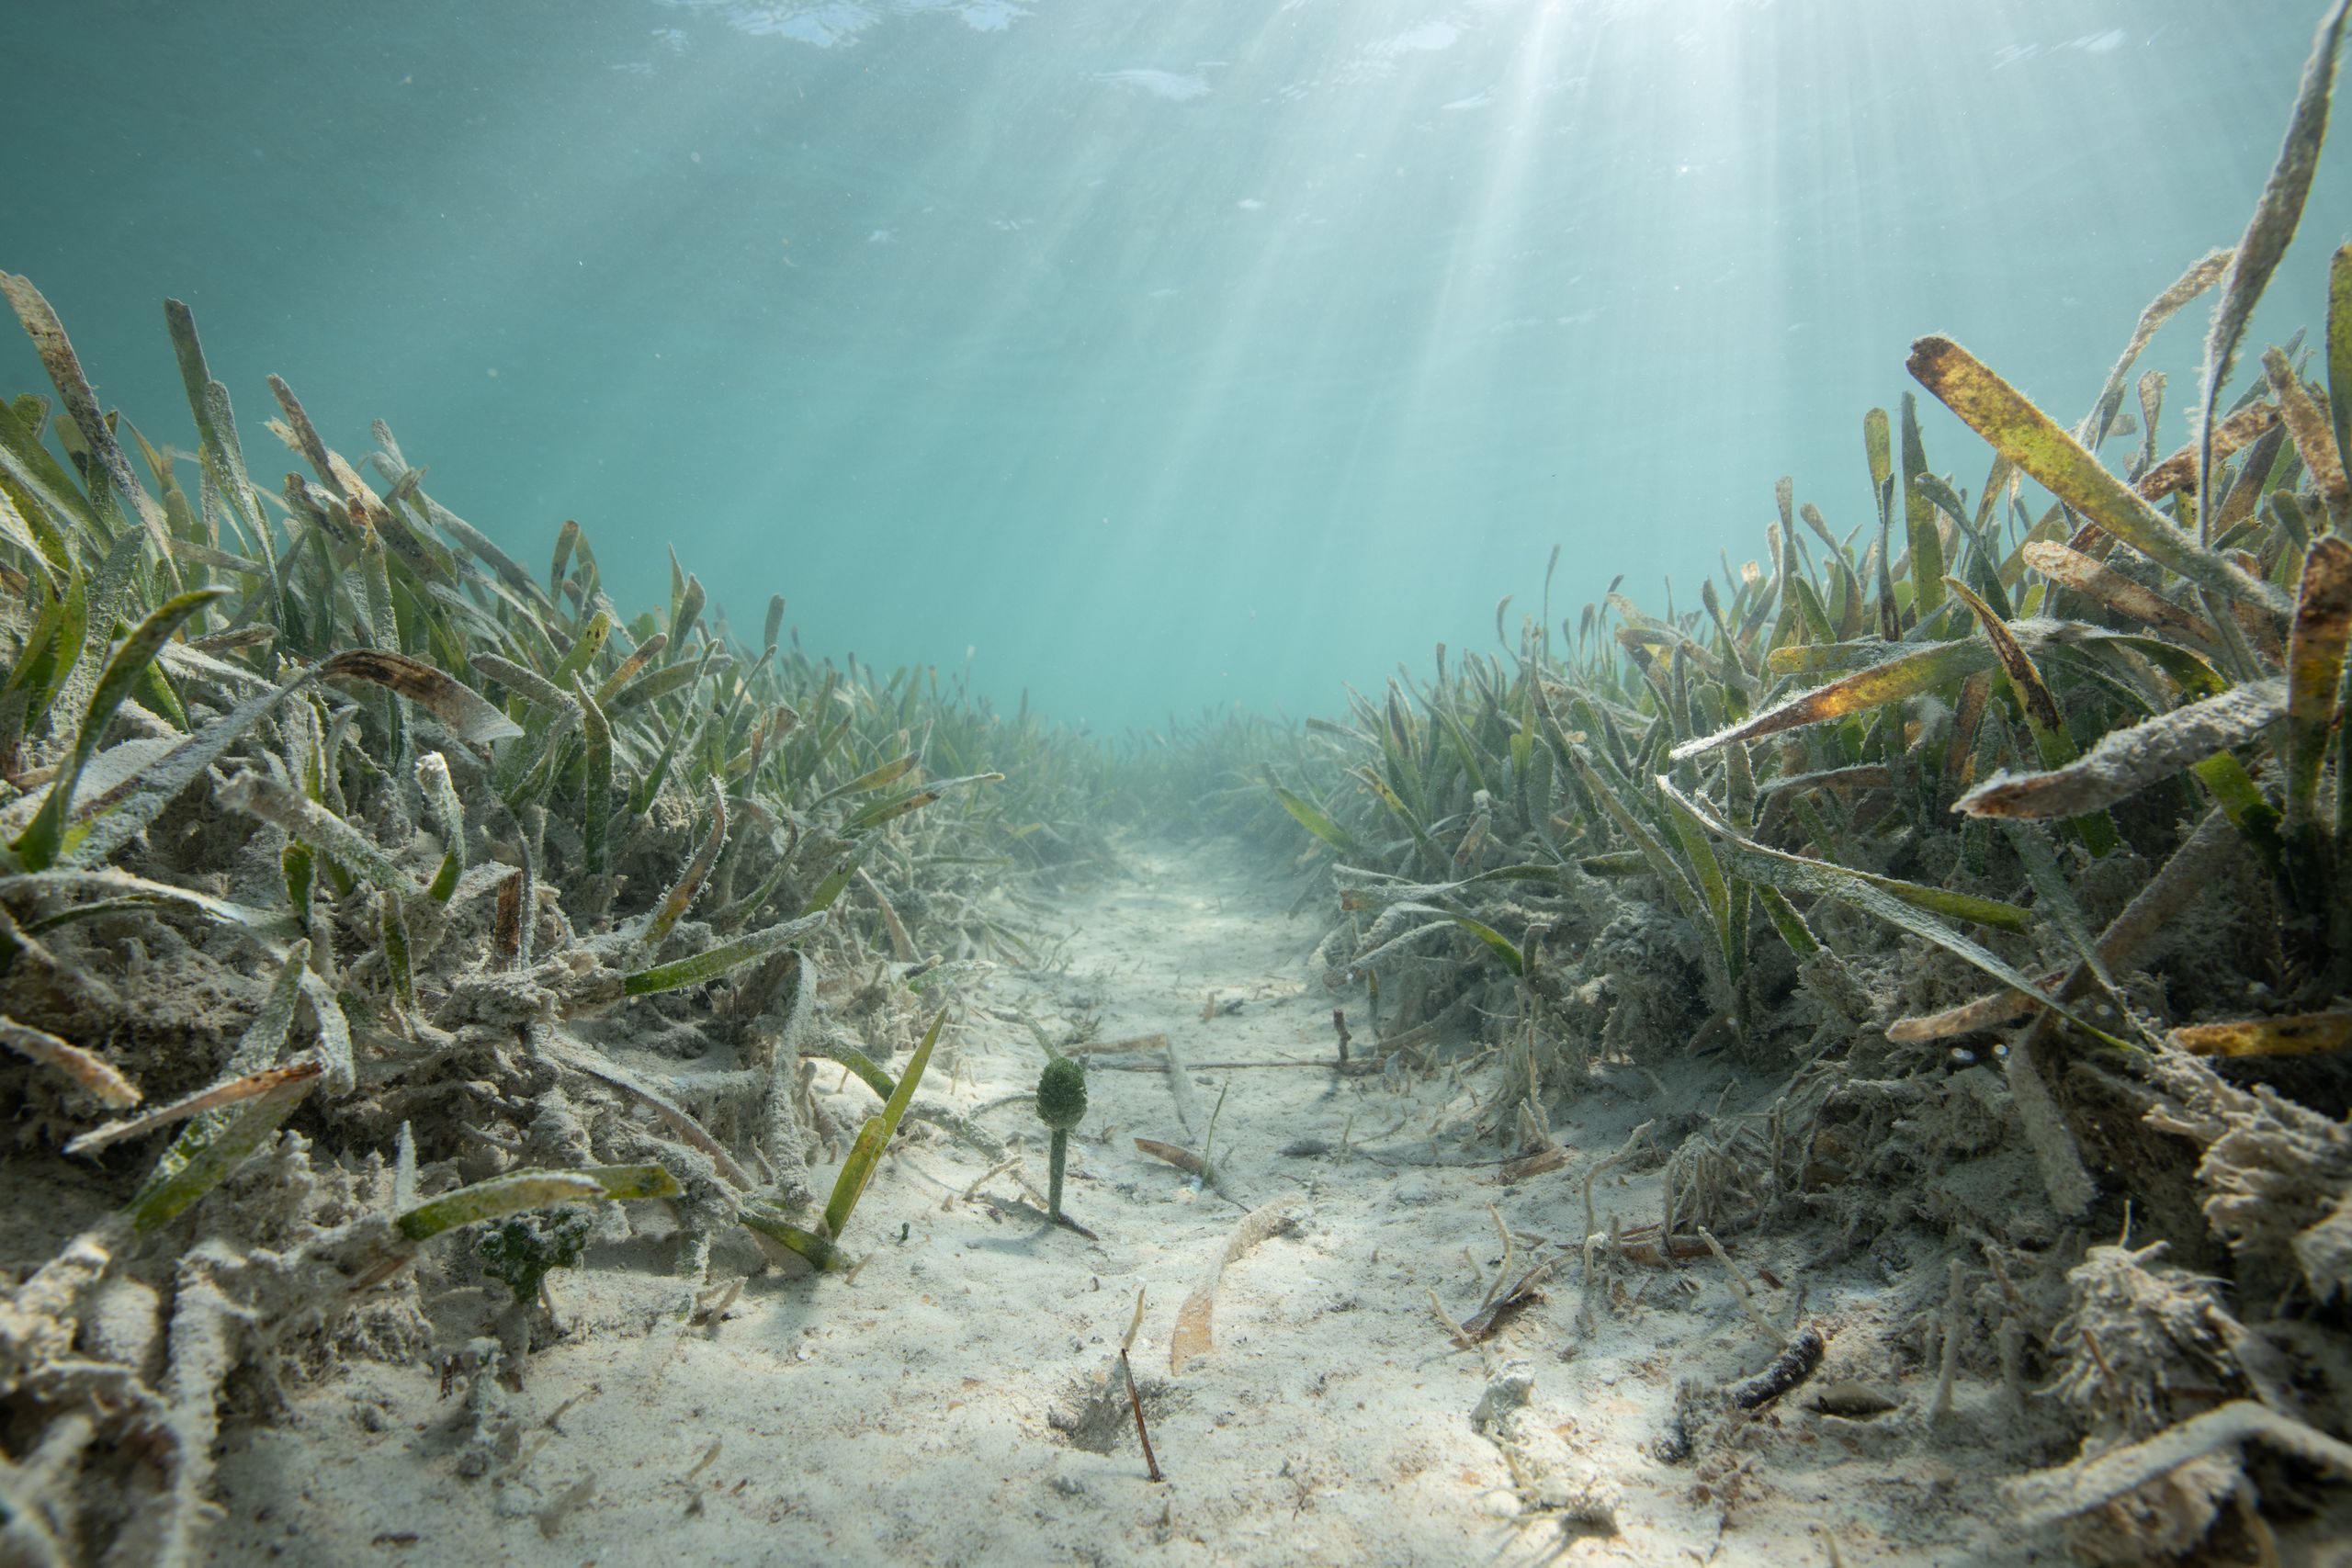 A propeller scar from a boat in a seagrass meadow composed of turtle grass in the Lignumvitae Key Aquatic Preserve, Islamorad